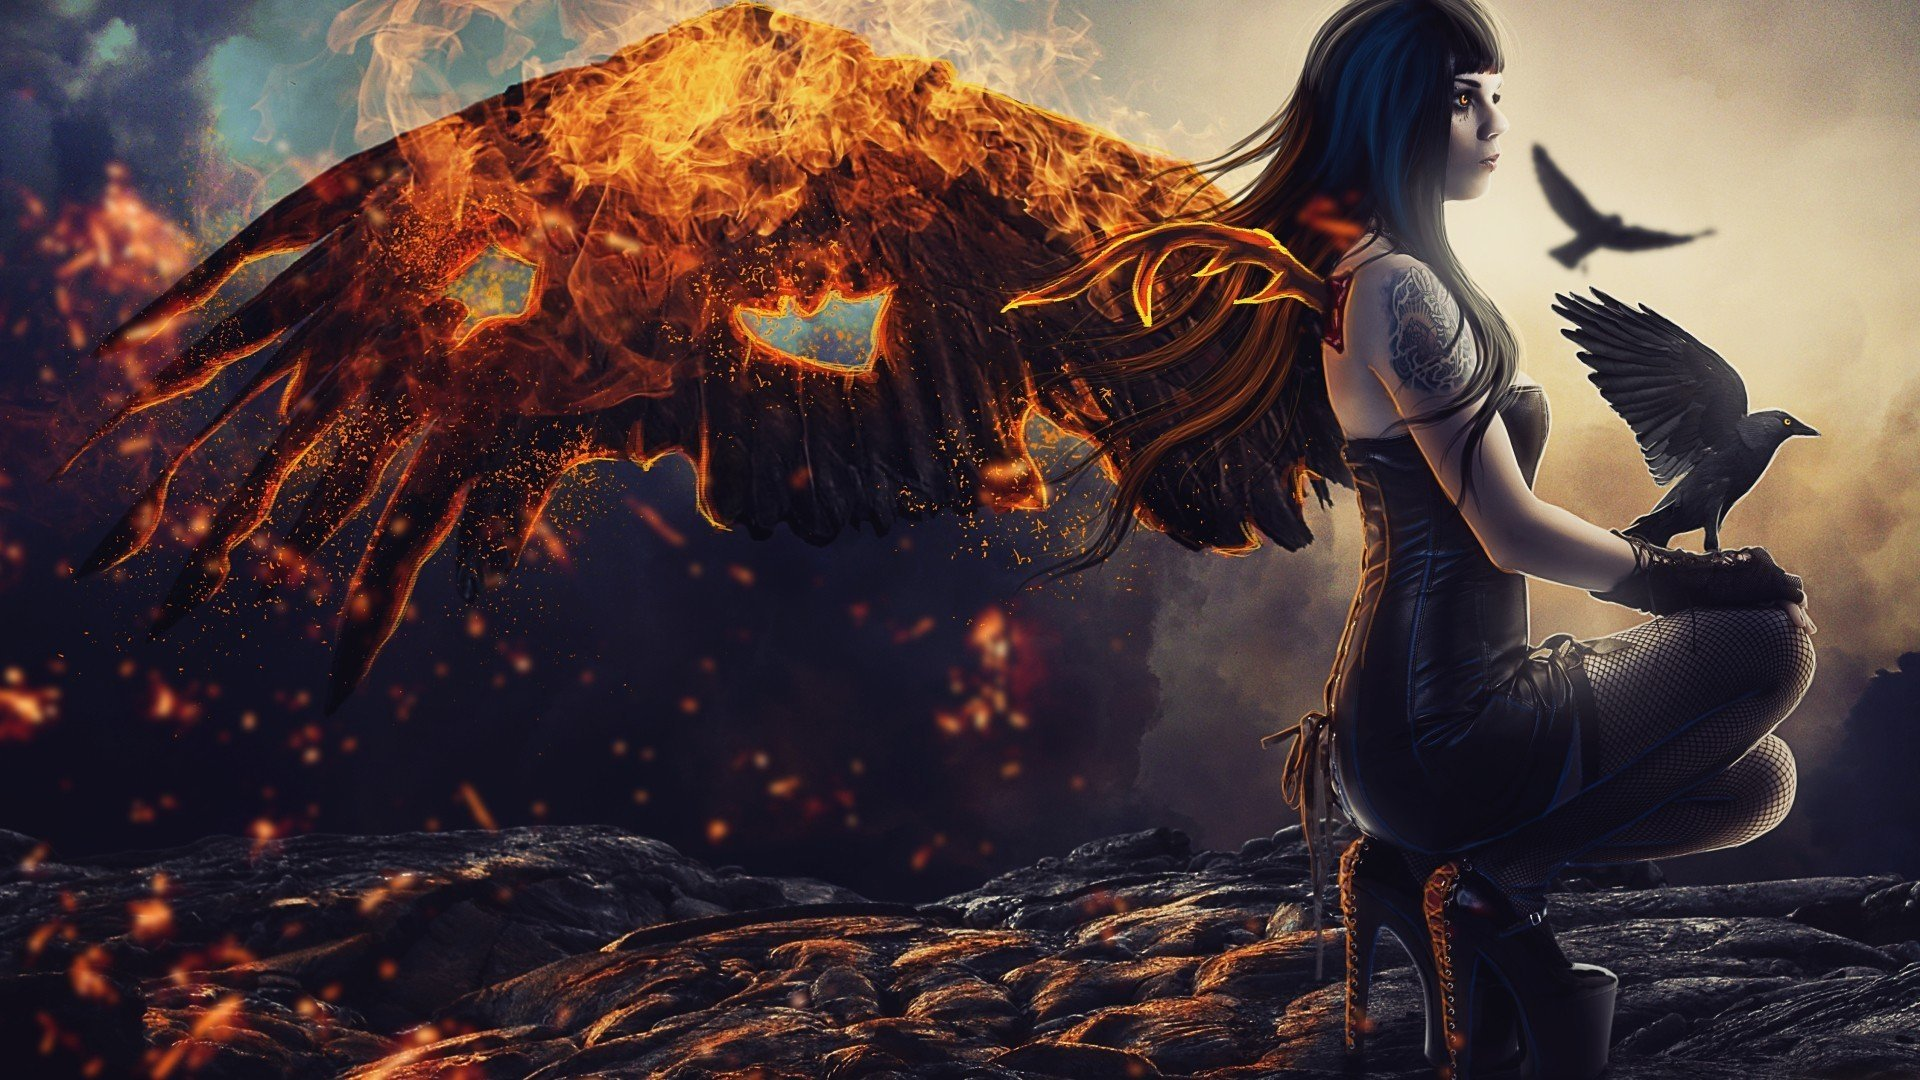 Wings Of Fire Wallpaper Free Download